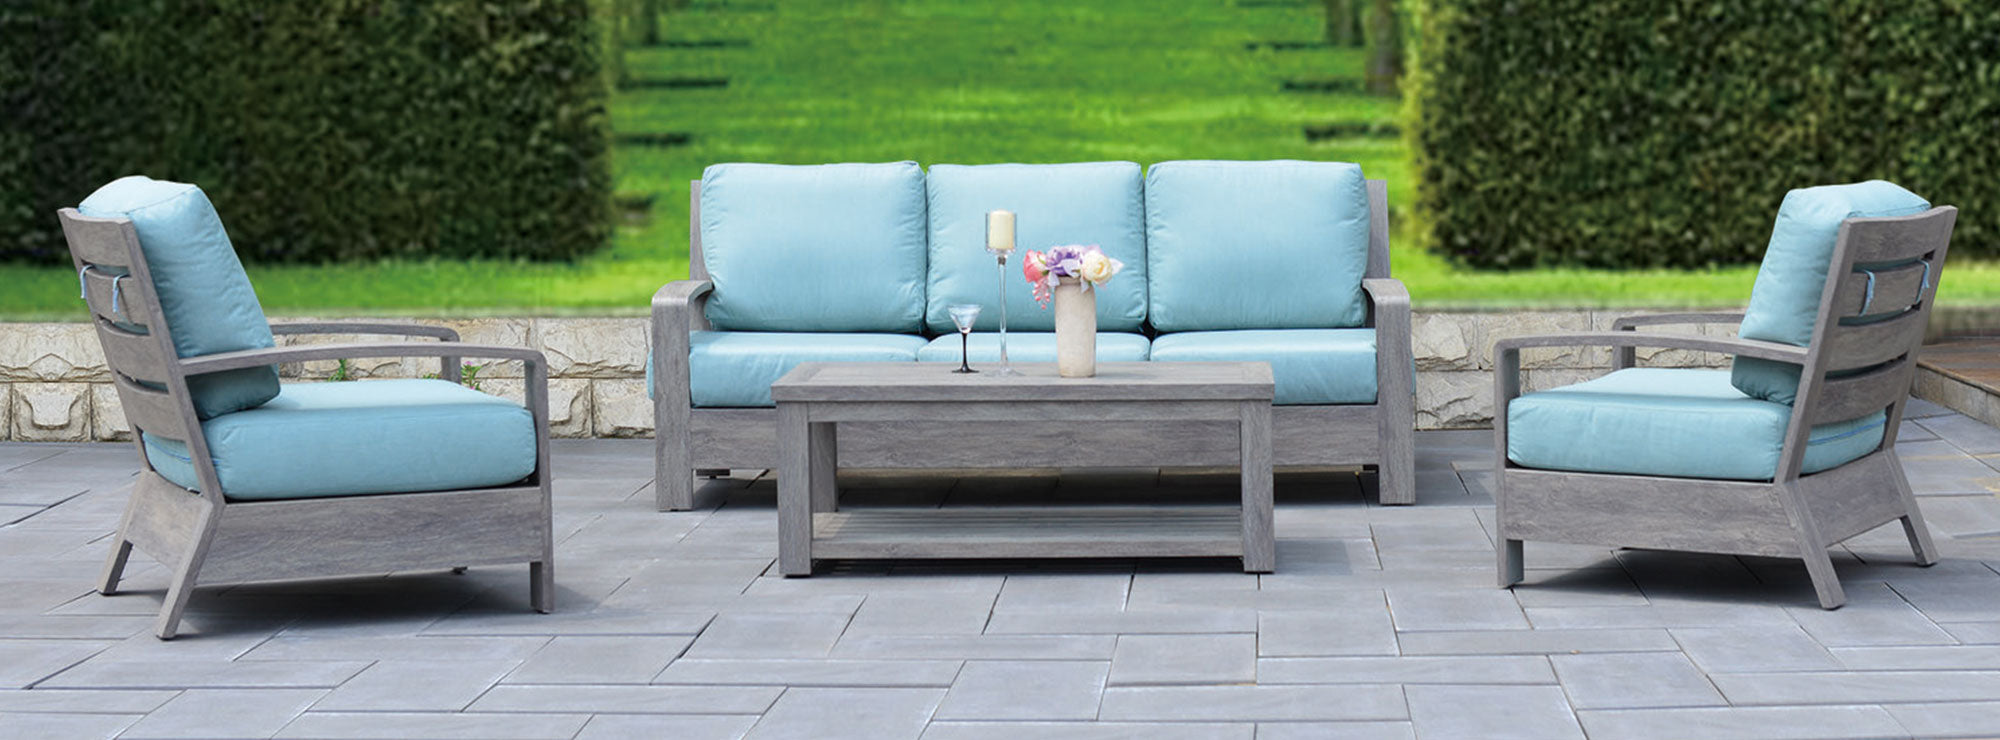 seattle outdoor sofa with grey frame and blue cushions